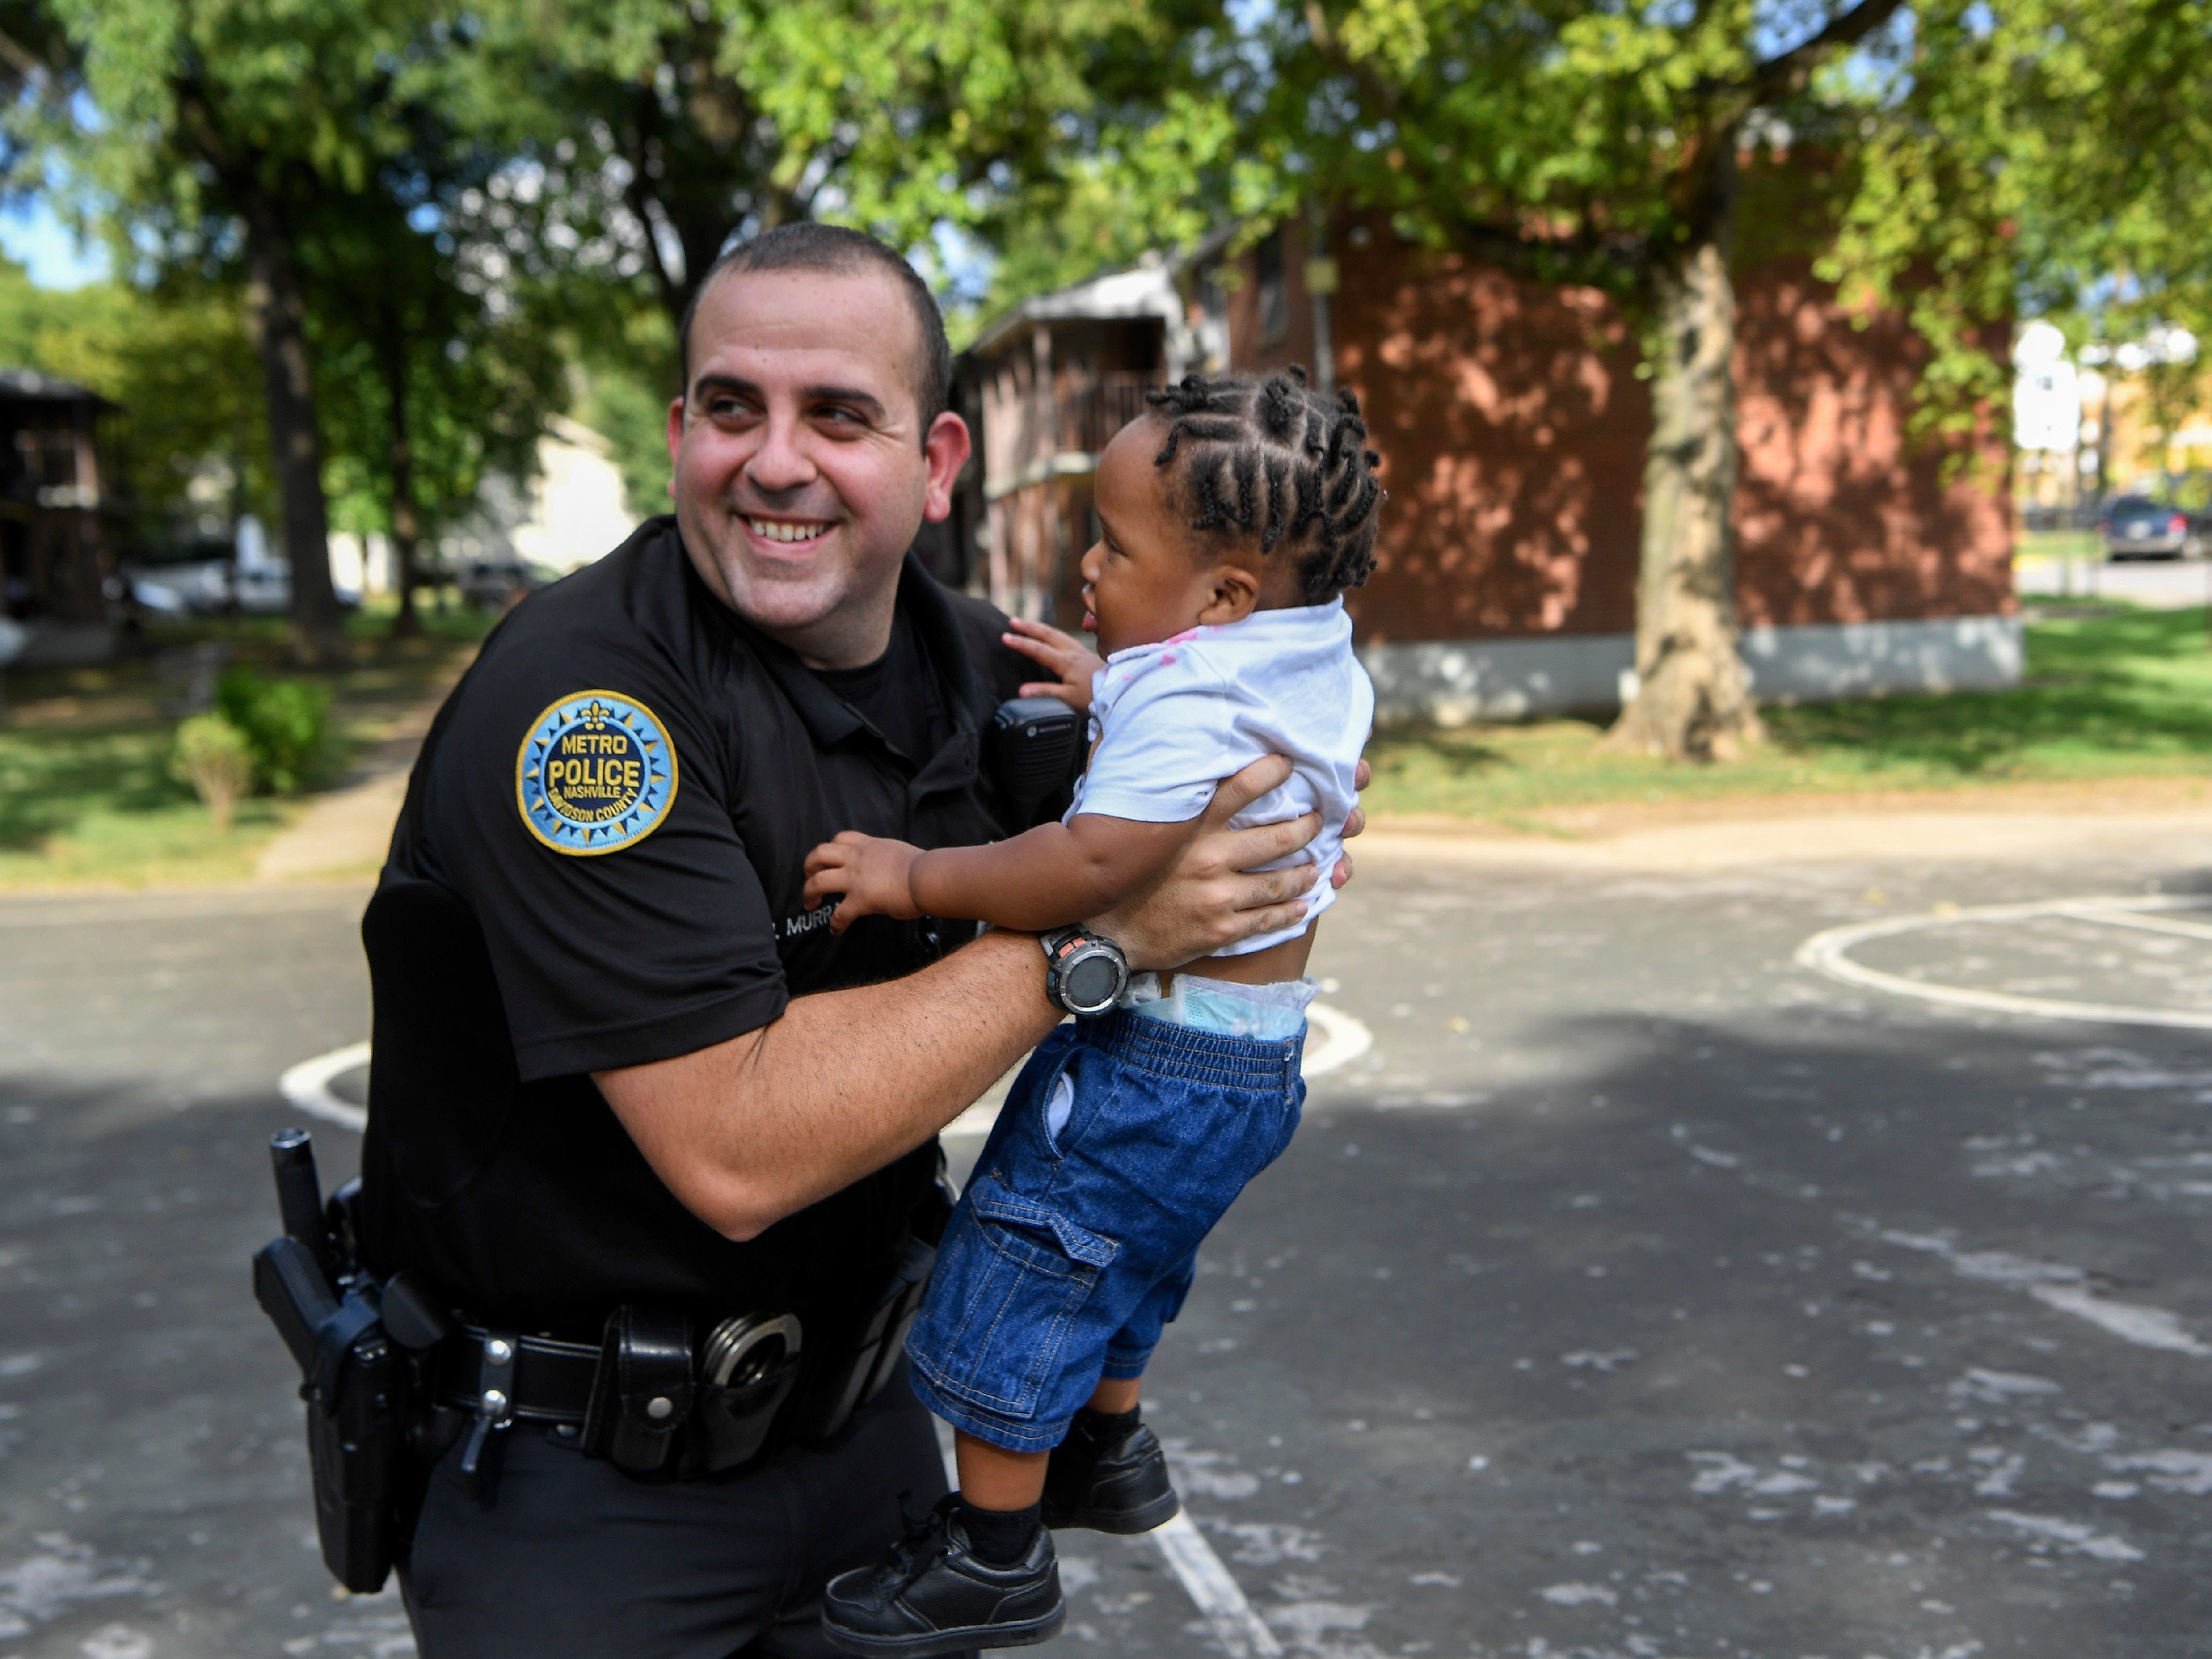 Officer Josh Murray with the Metro Nashville Police Department picks up Eamon Perry, 16 months old, as officers make their rounds through the James A. Cayce Homes housing development Aug. 30, 2018.